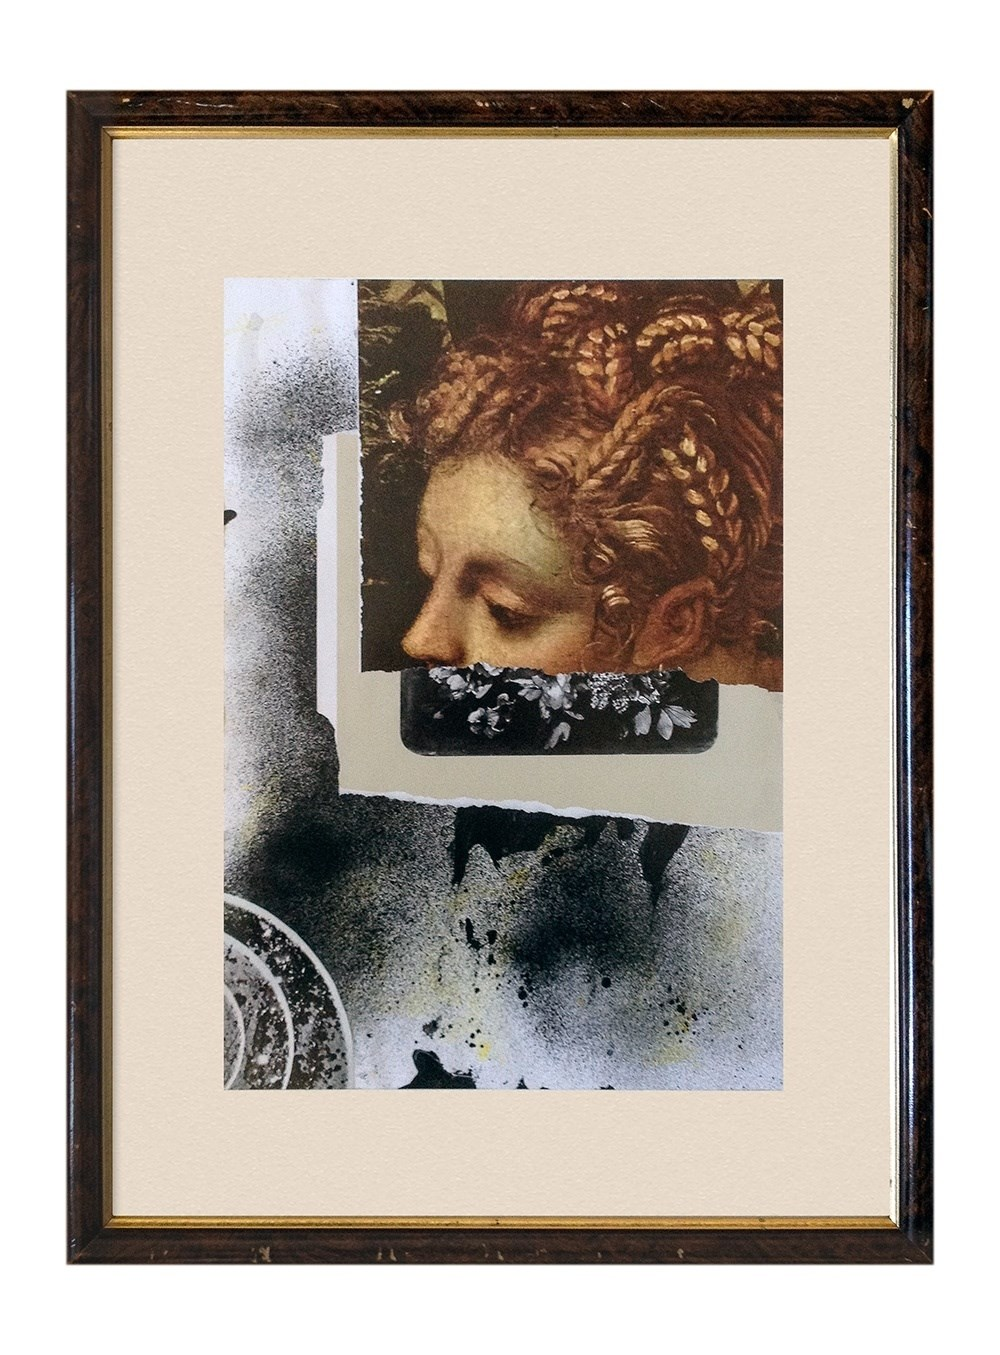 Strangers to Ourselves, original Abstract Collage Drawing and Illustration by Nuno Moreira